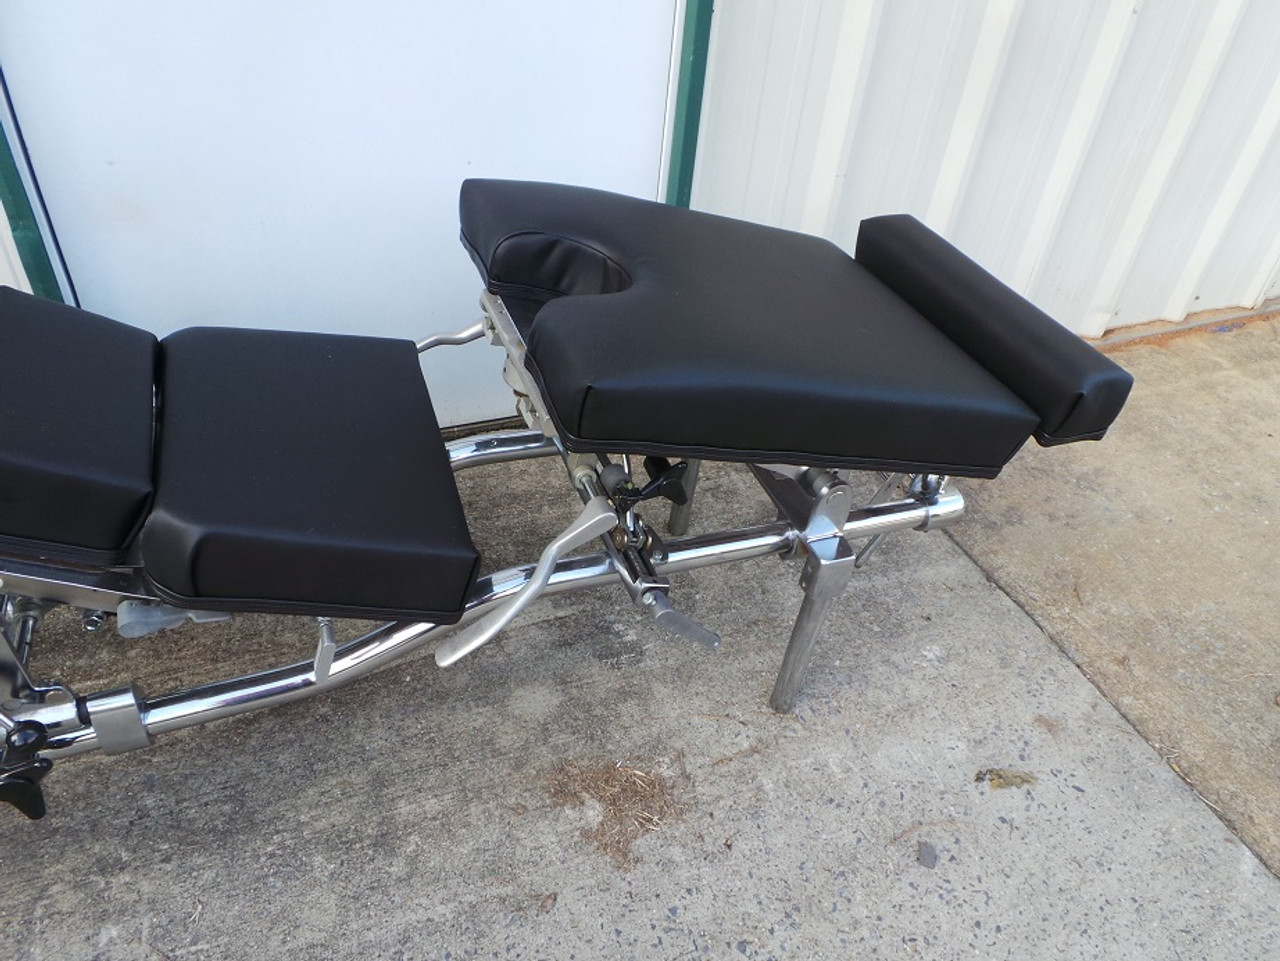 This Zenith 60 Stationary table shows the Breakaway Chest, Elevating Pelvic & ankle and Pelvic Drop.